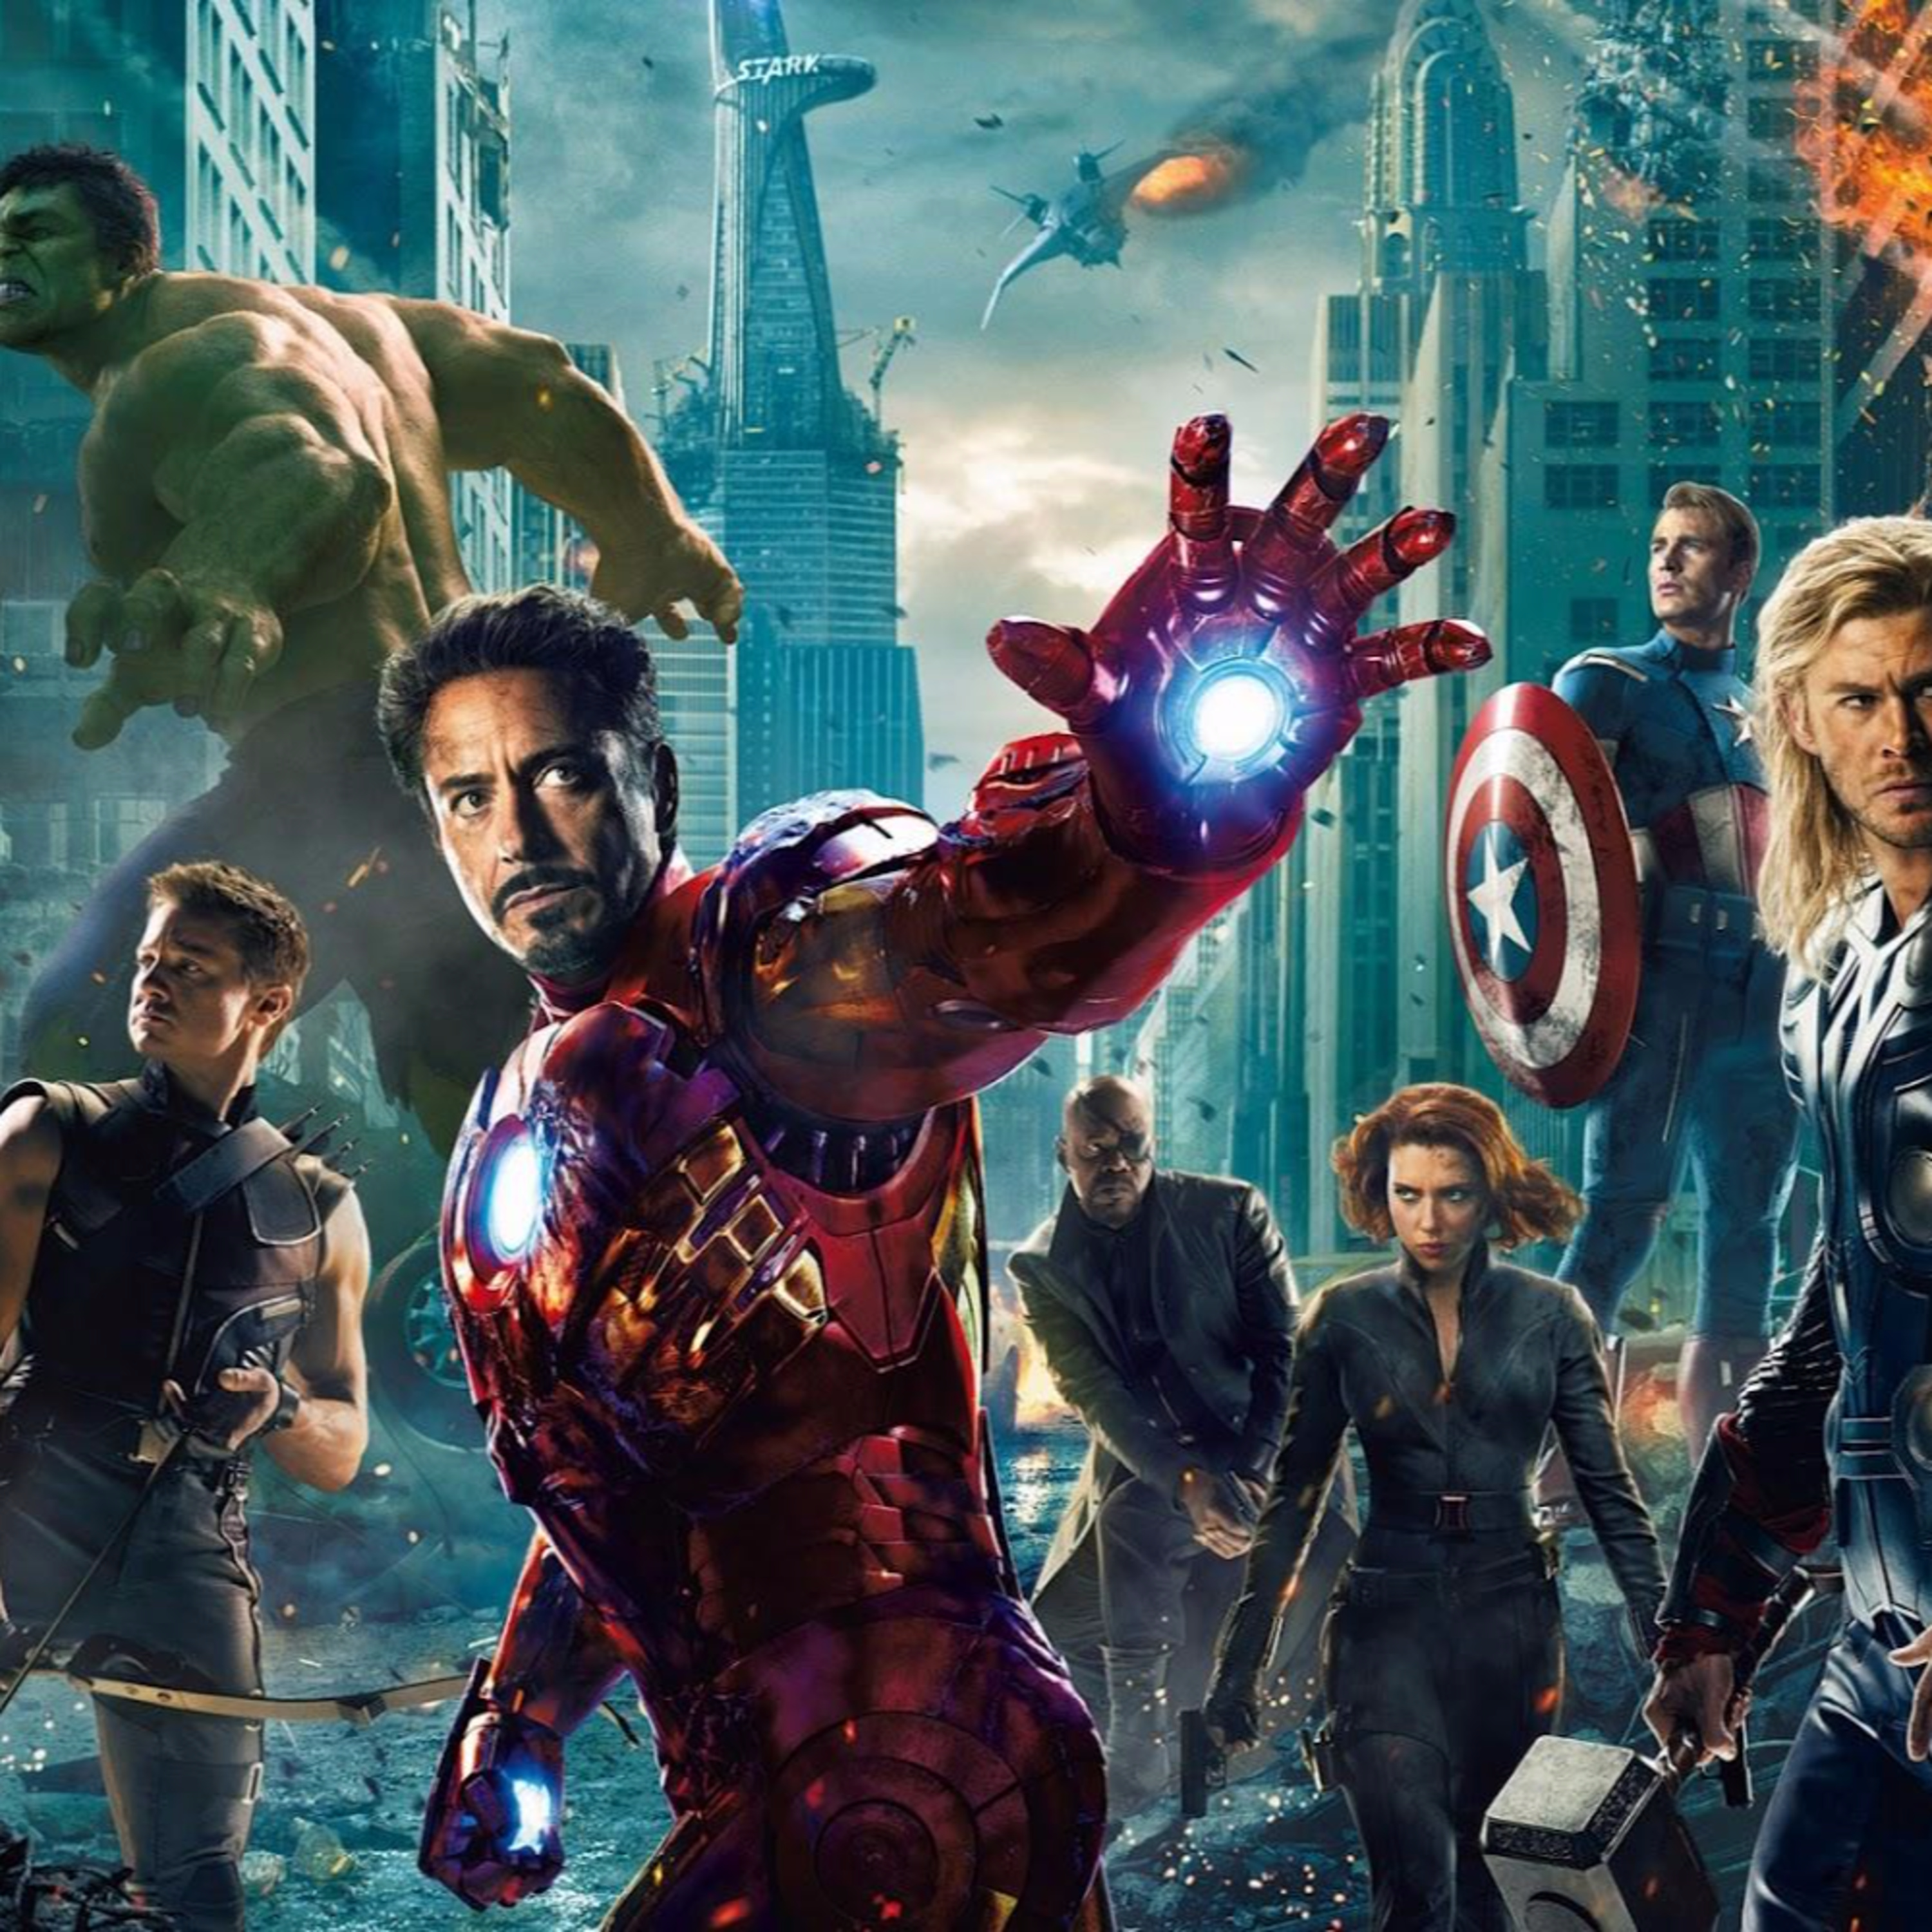 Avengers: Countdown to the Endgame - Day Seven: The Avengers